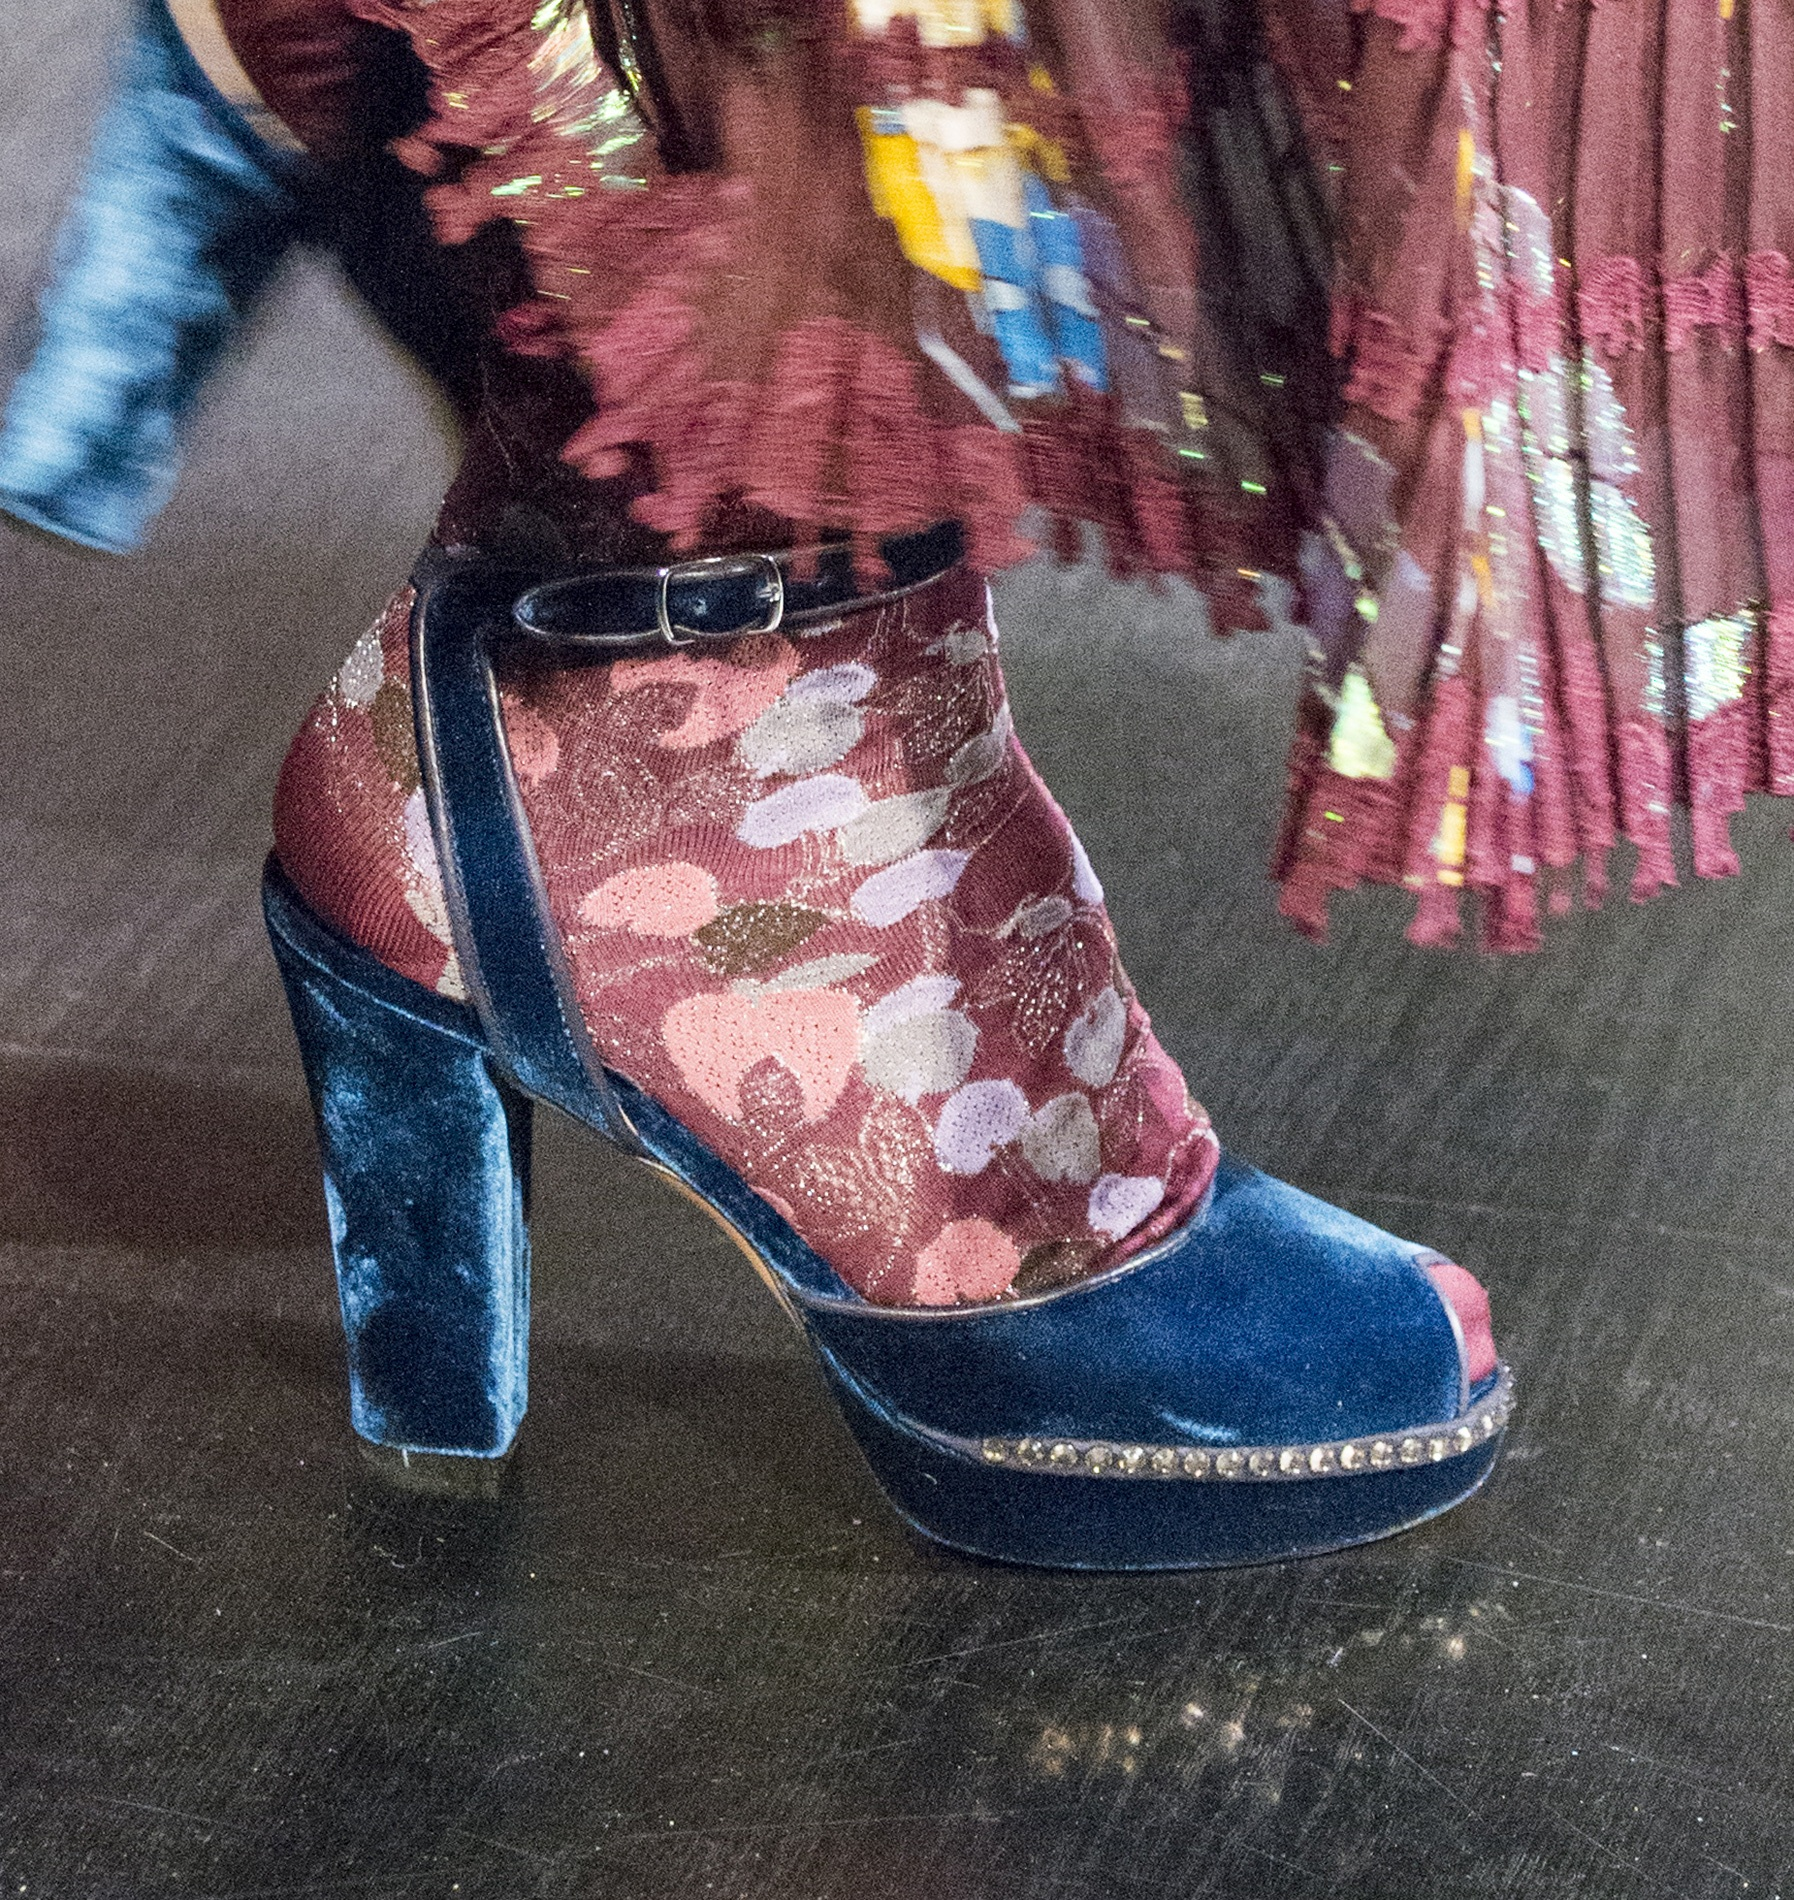 Flur-Magazine-best-shoes-fw17-anna-sui-clp-rf17-1217